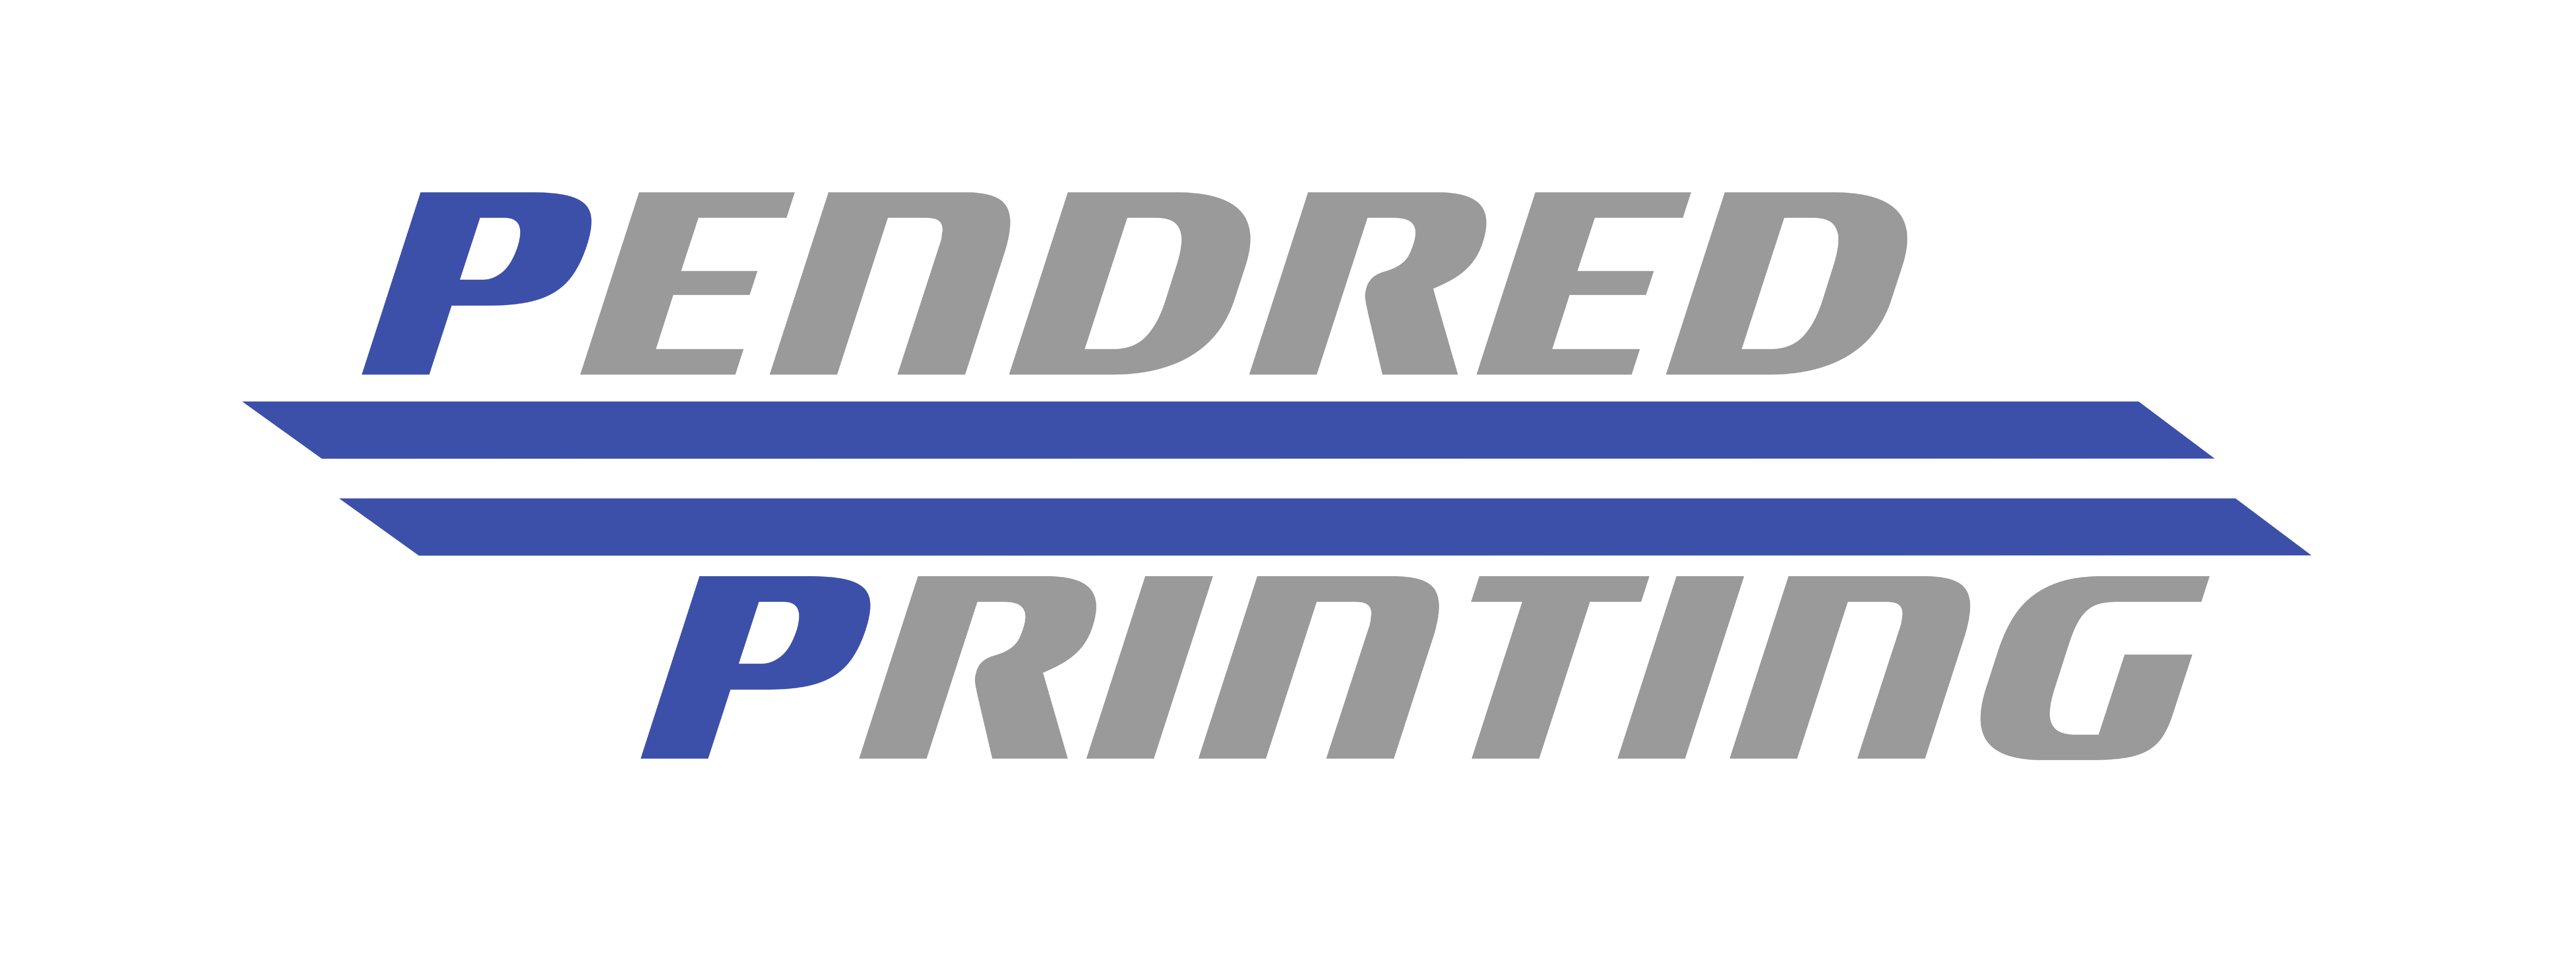 Pendred Printing | Printing in Cambridge, made easy!